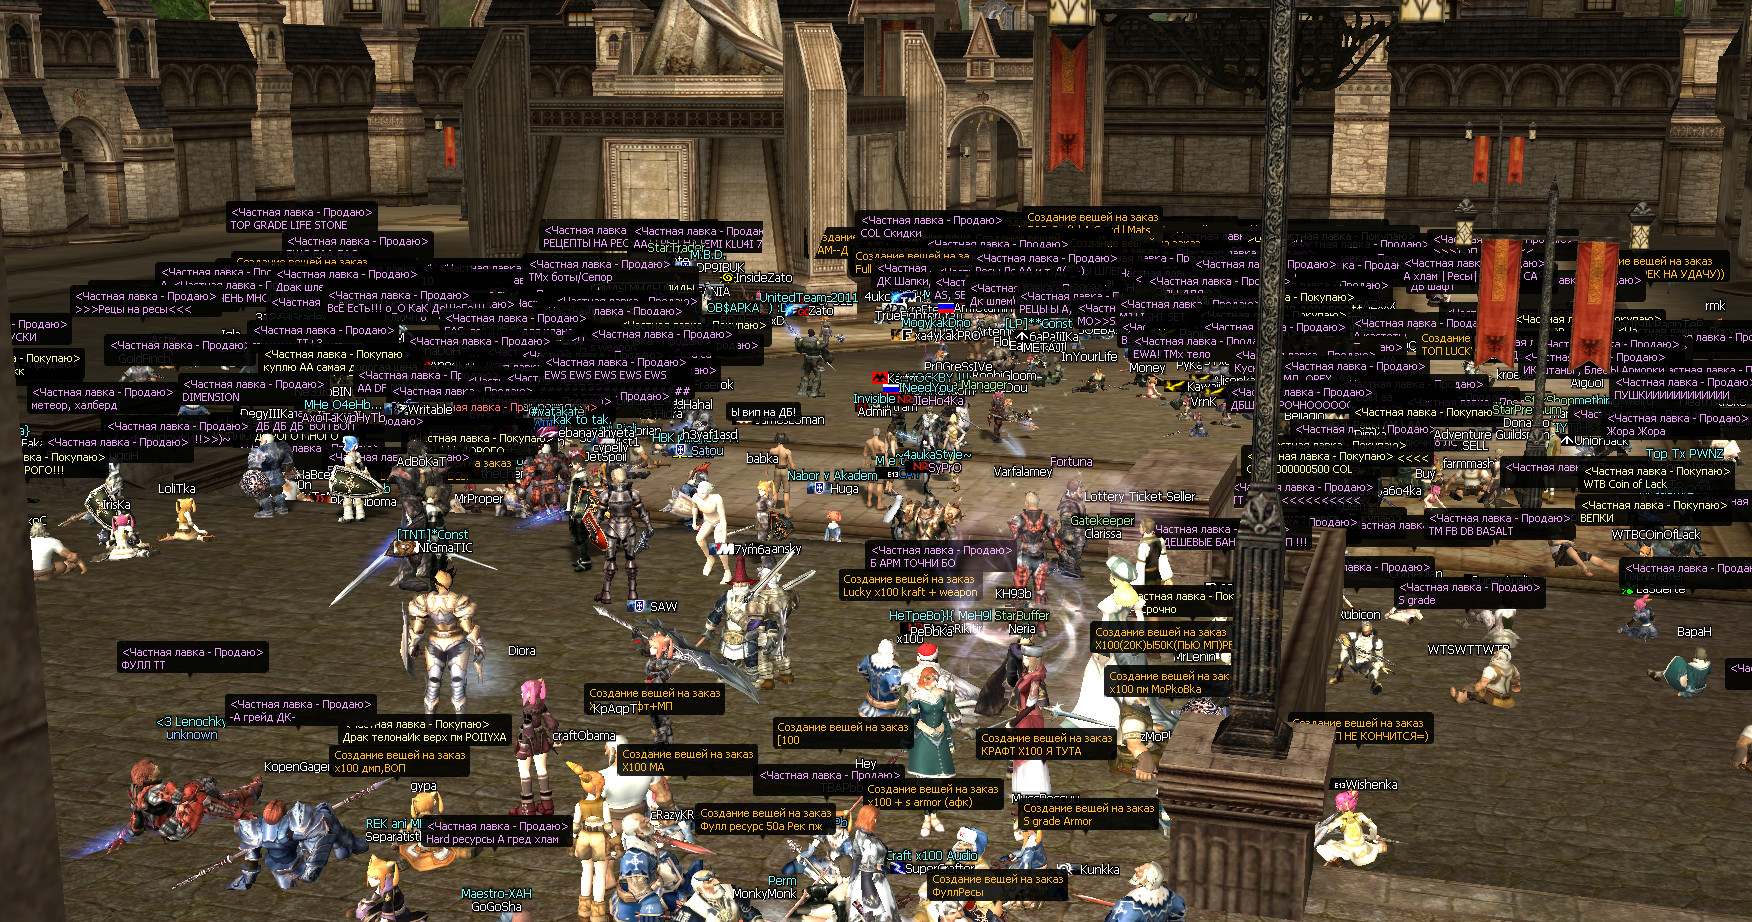 L2age lineage ii interlude high five servers - language